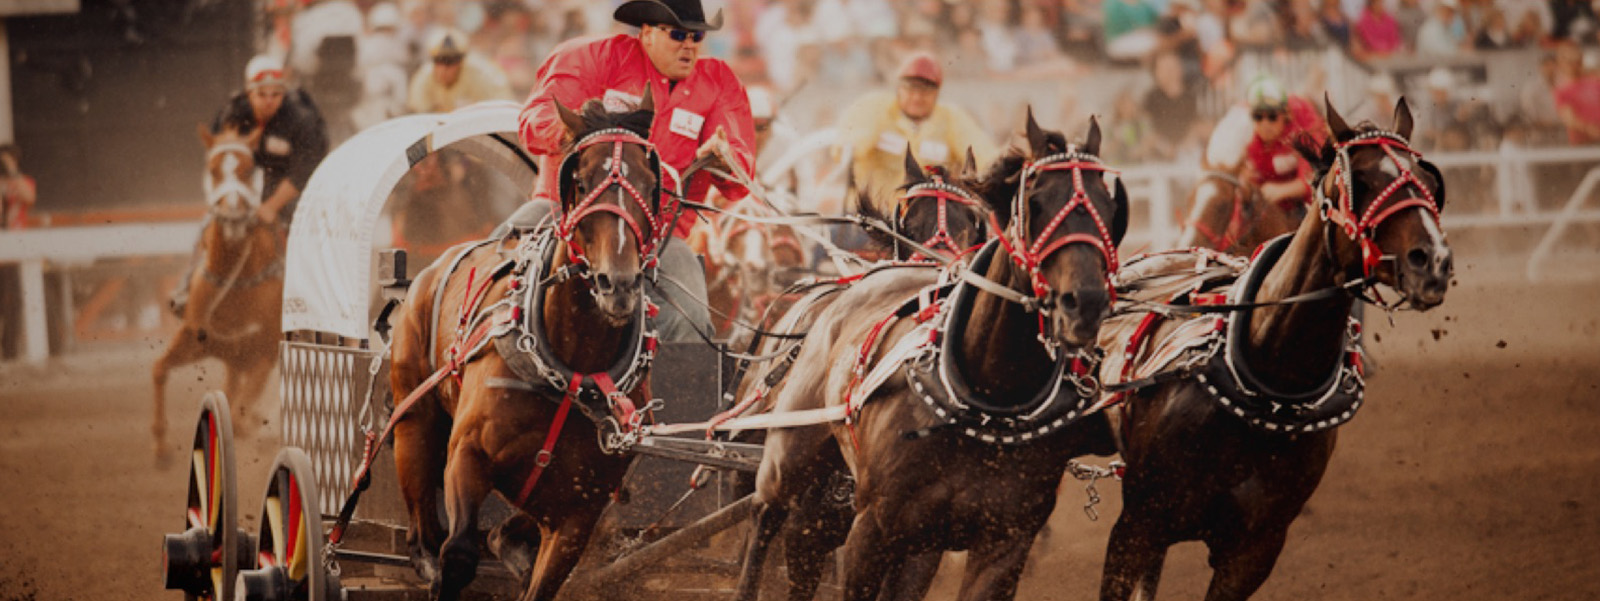 Gmc Rangeland Derby Chuckwagon Tickets Calgary Stampede